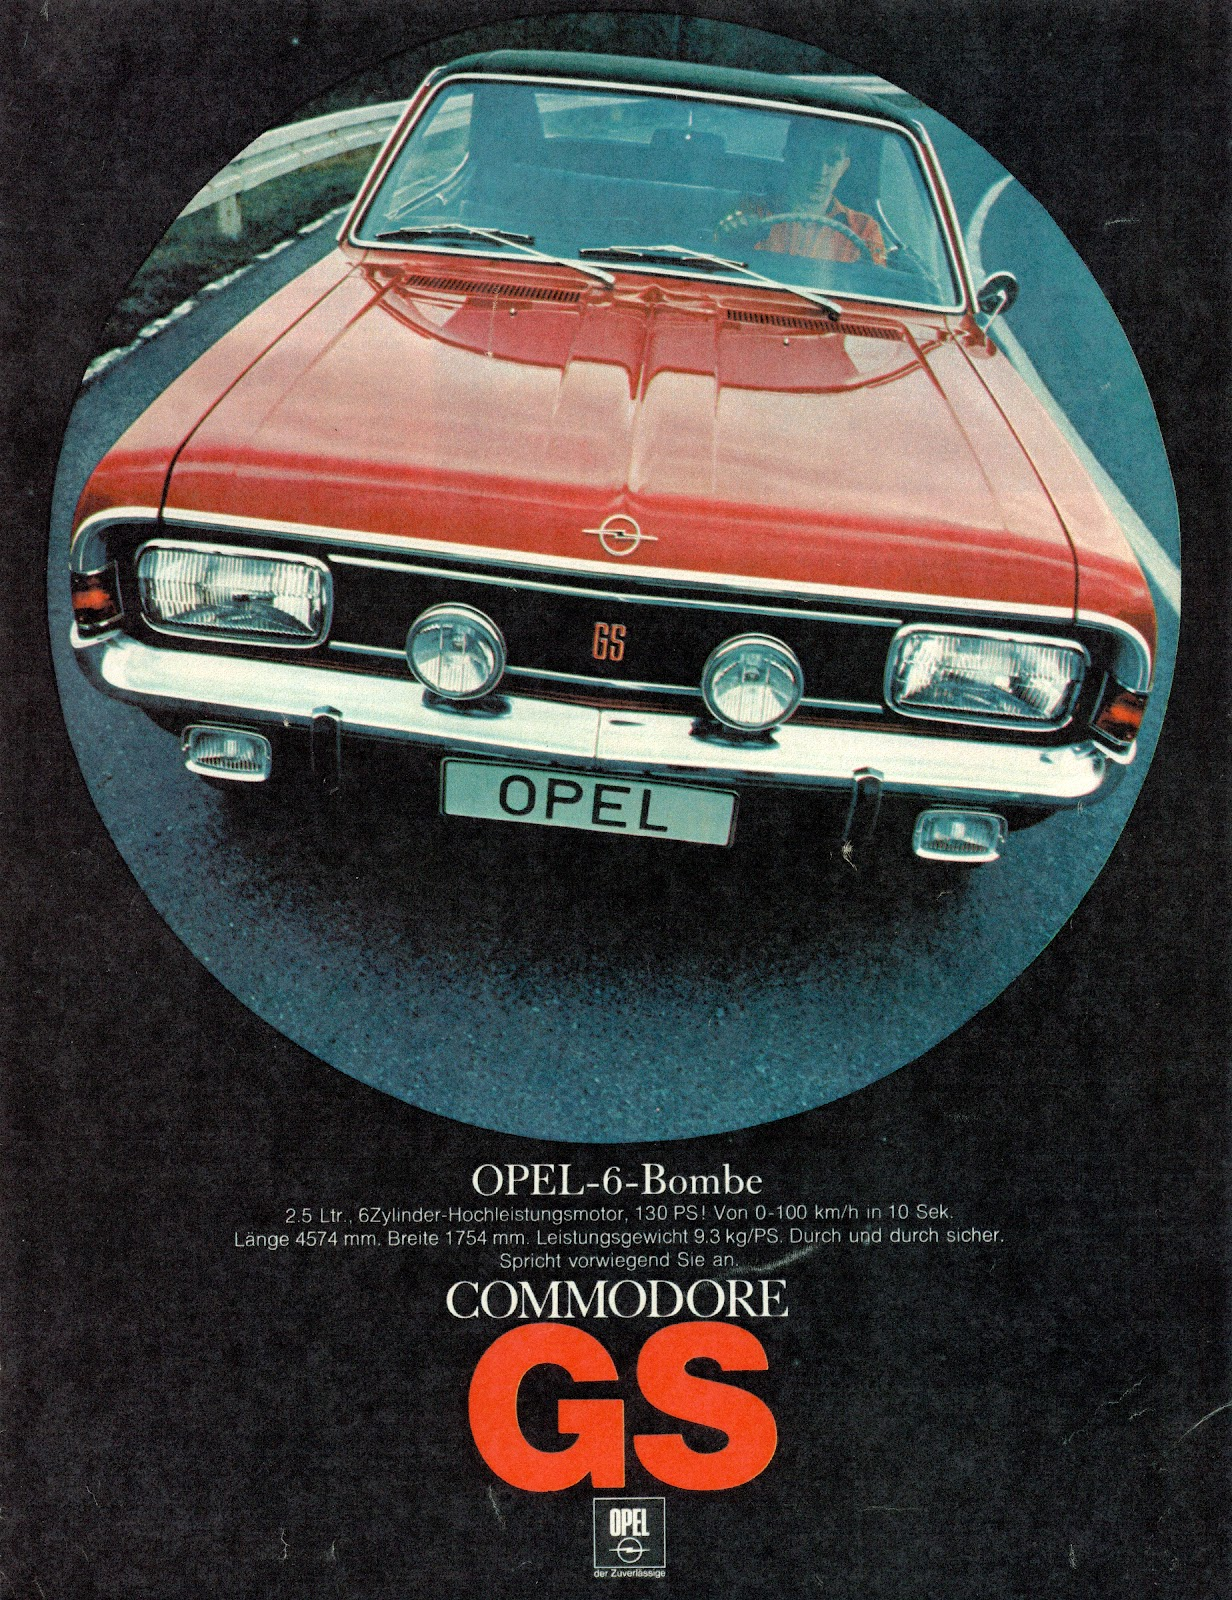 1968-Opel-Commodore-GS-Germany.jpg